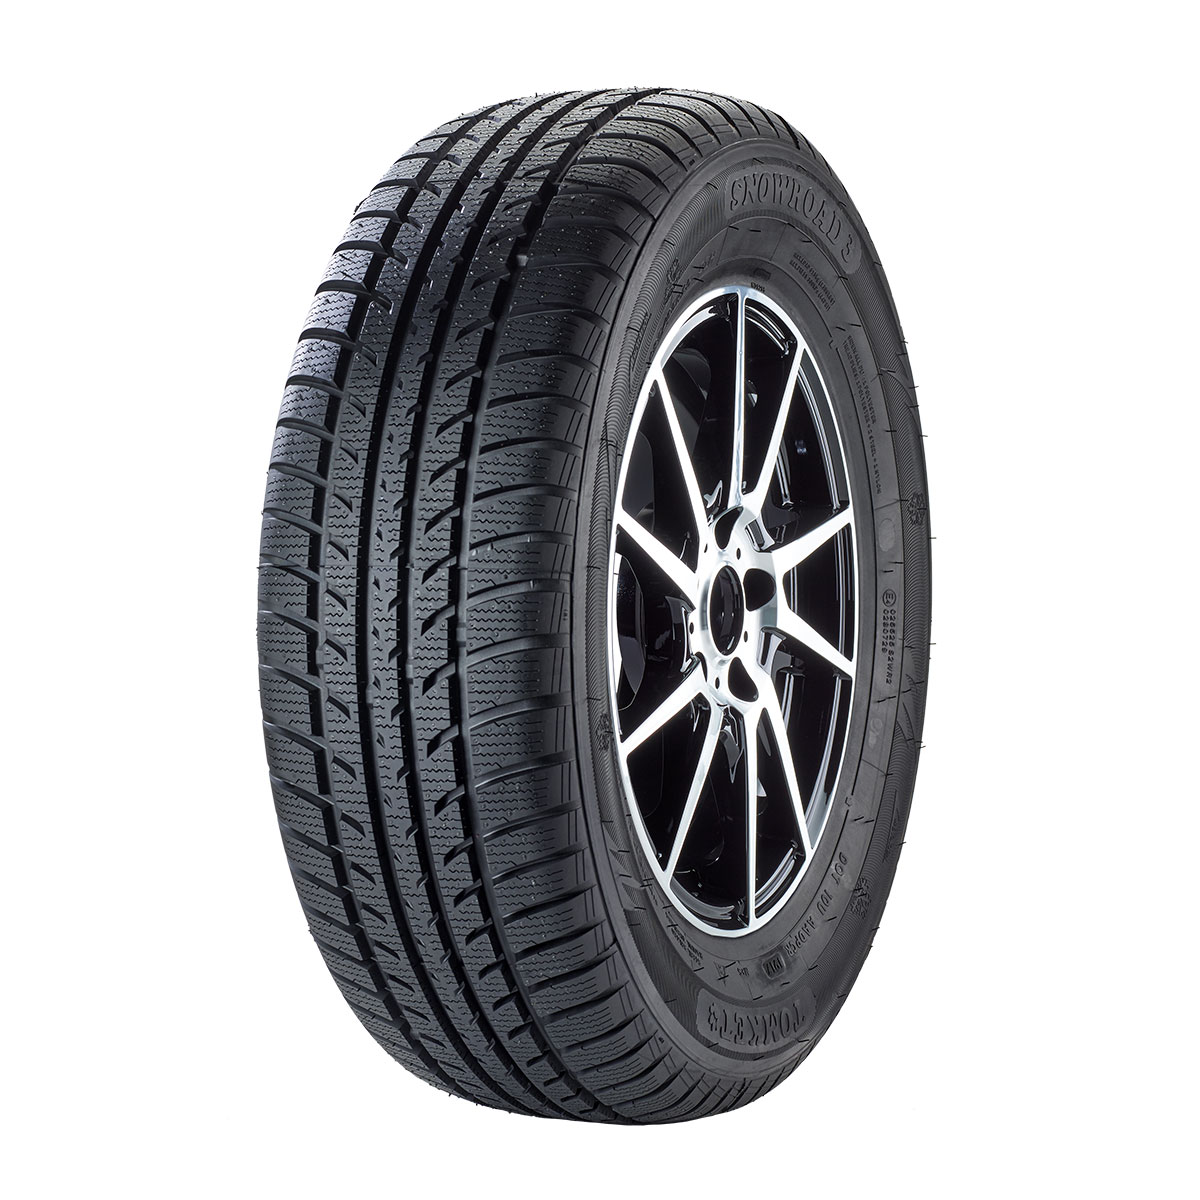 Gomme Autovettura Tomket 205/60 R16 96H SNOWROAD 3 XL M+S Invernale